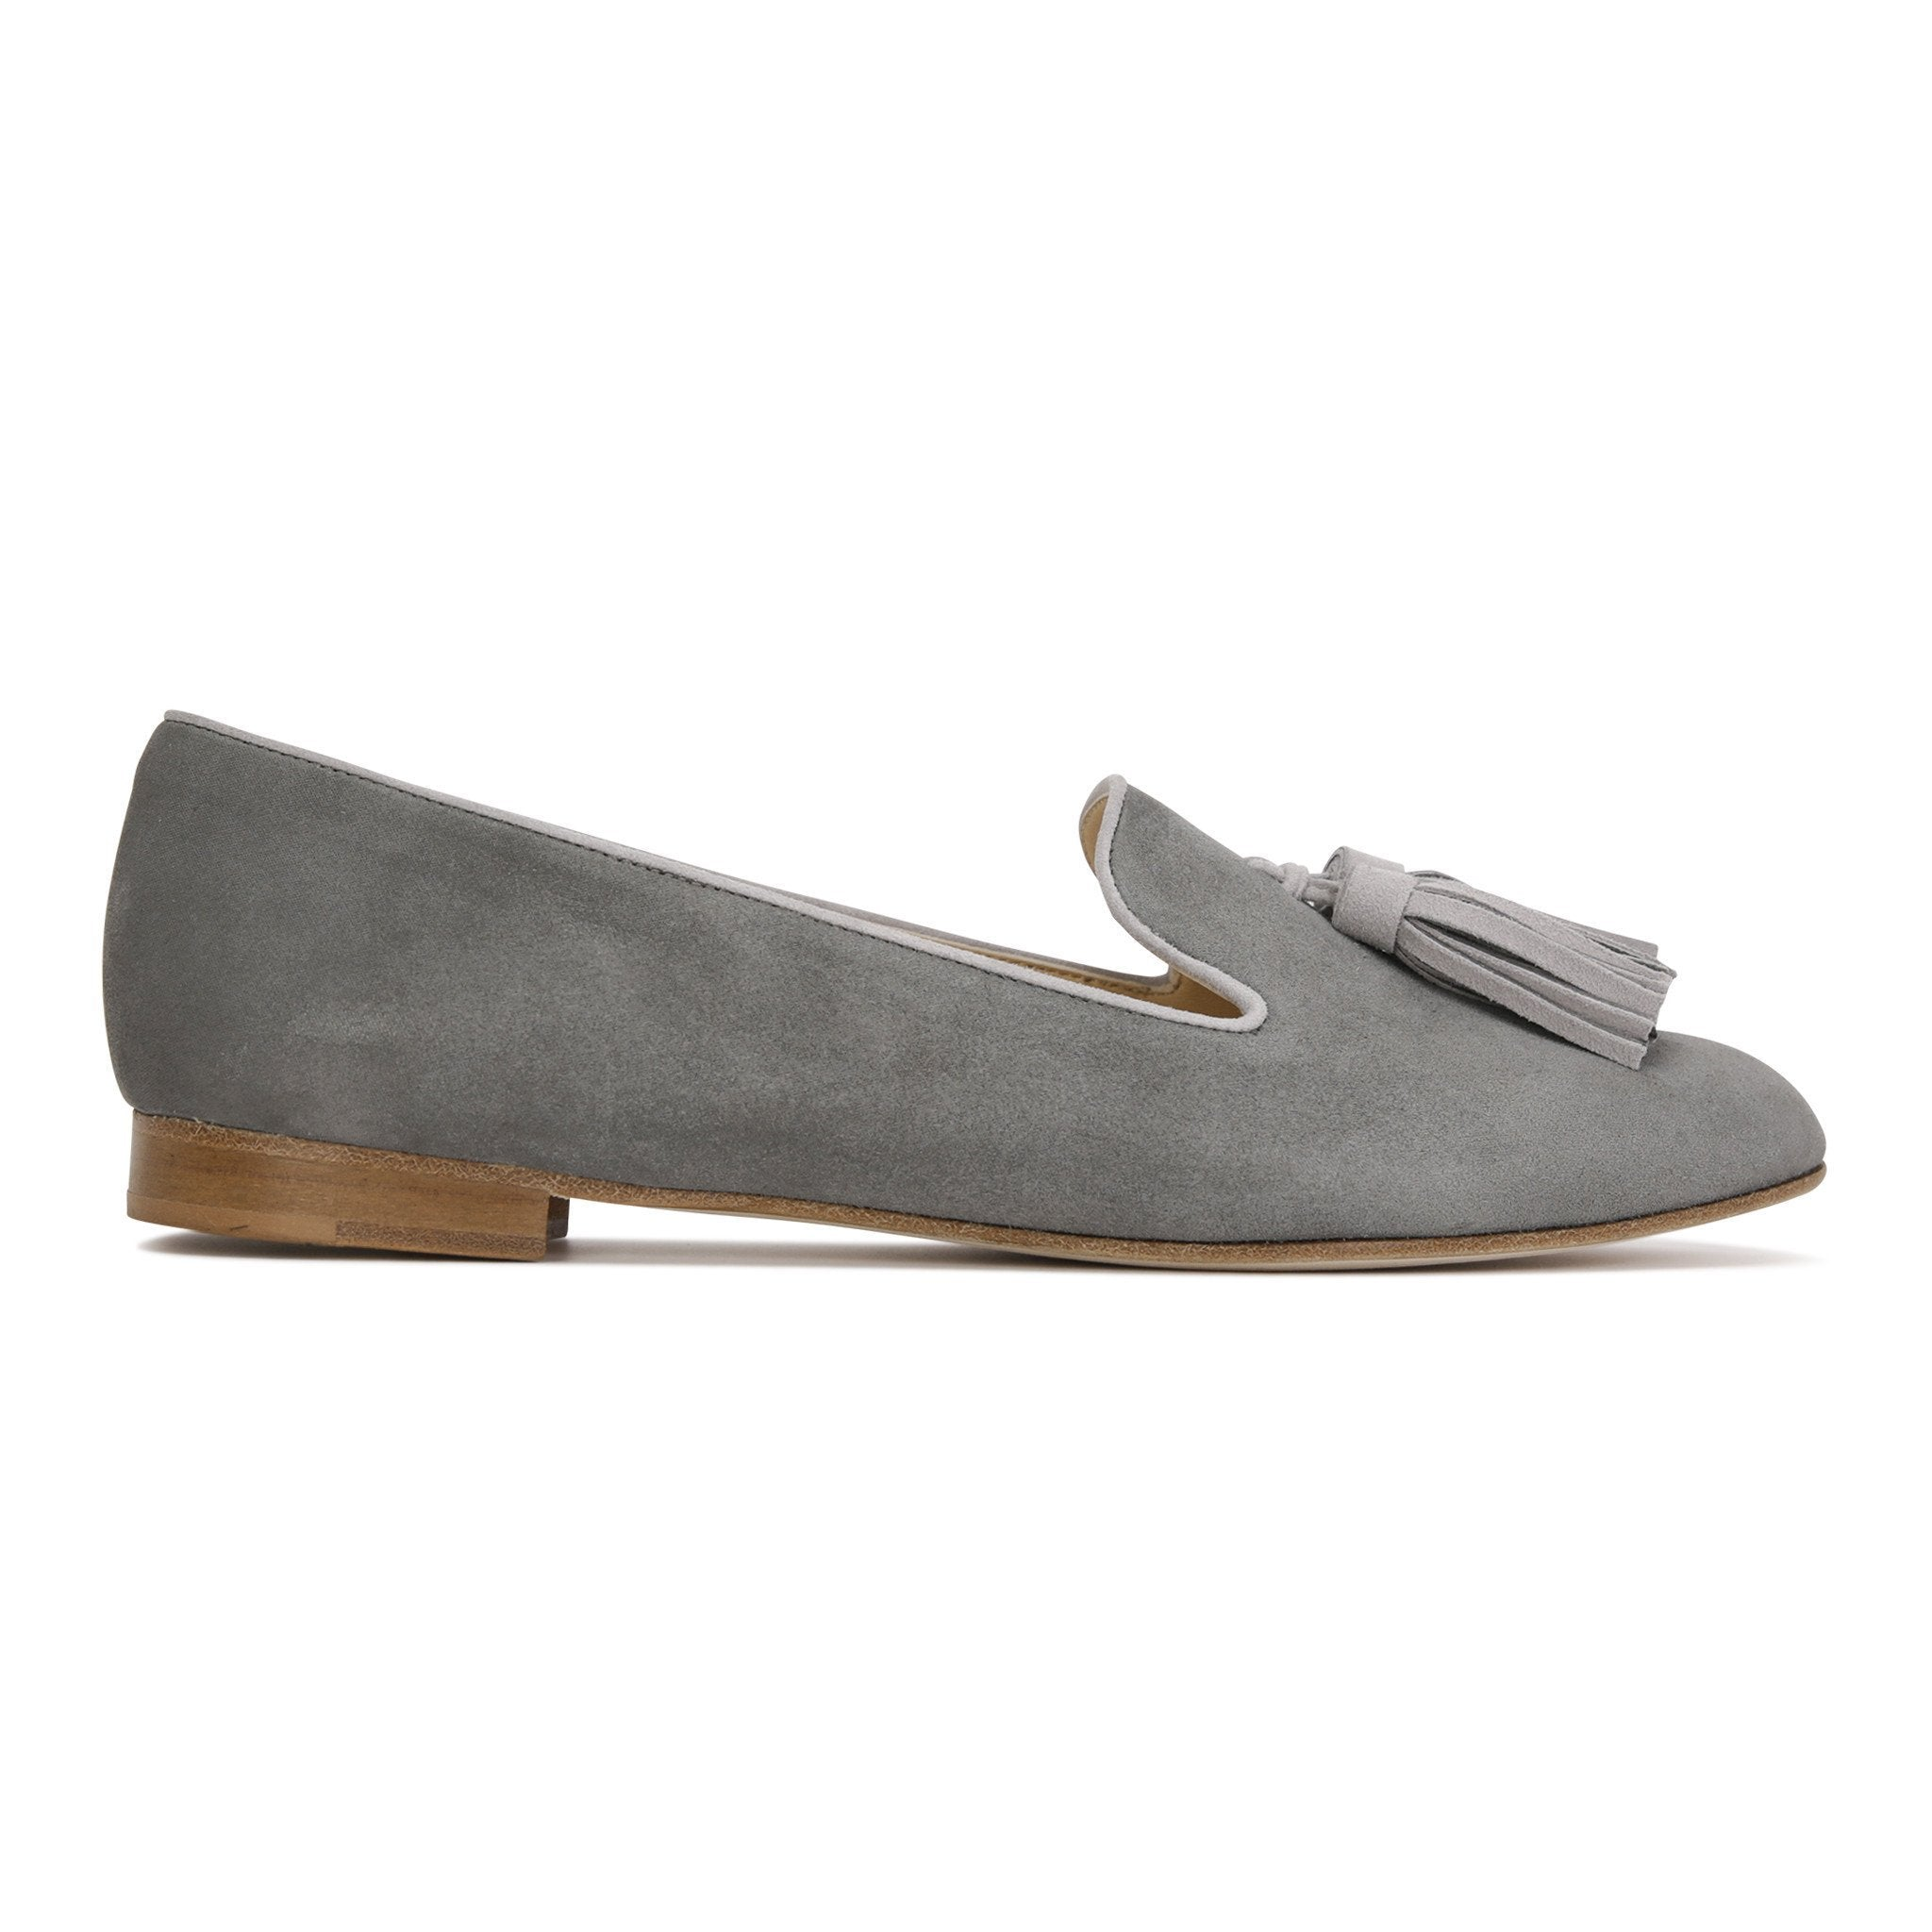 PARMA - Hydra Anthracite + Velukid Grigio, VIAJIYU - Women's Hand Made Sustainable Luxury Shoes. Made in Italy. Made to Order.